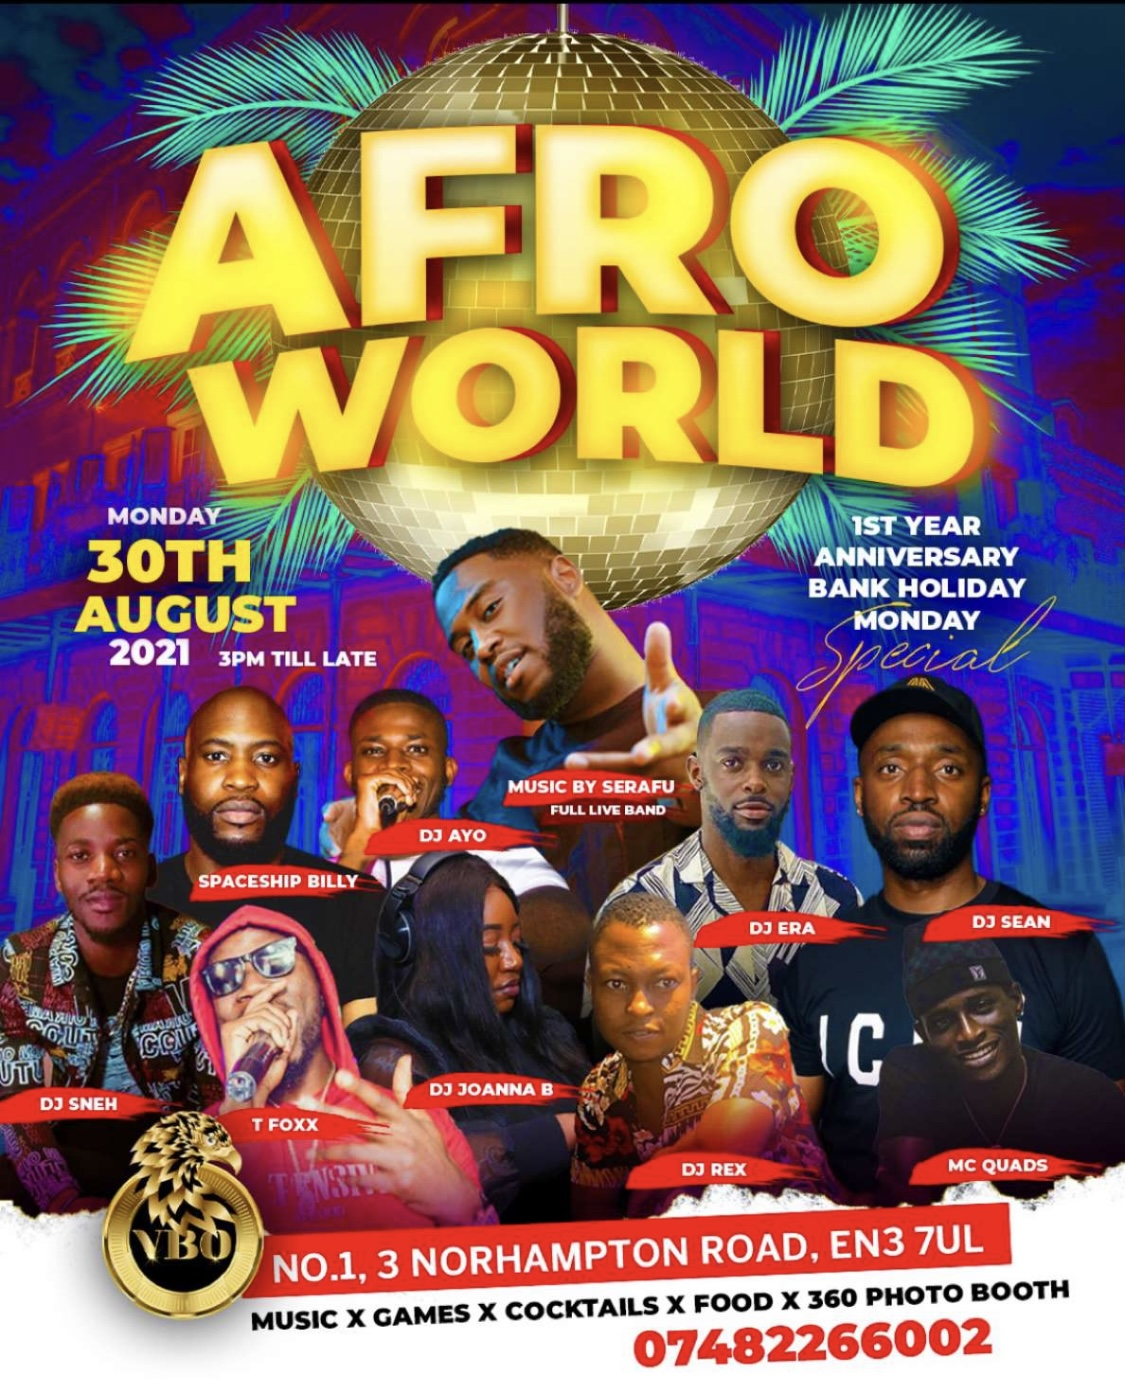 AFRO WORLD BANK HOL. MONDAY SPECIAL @VBO